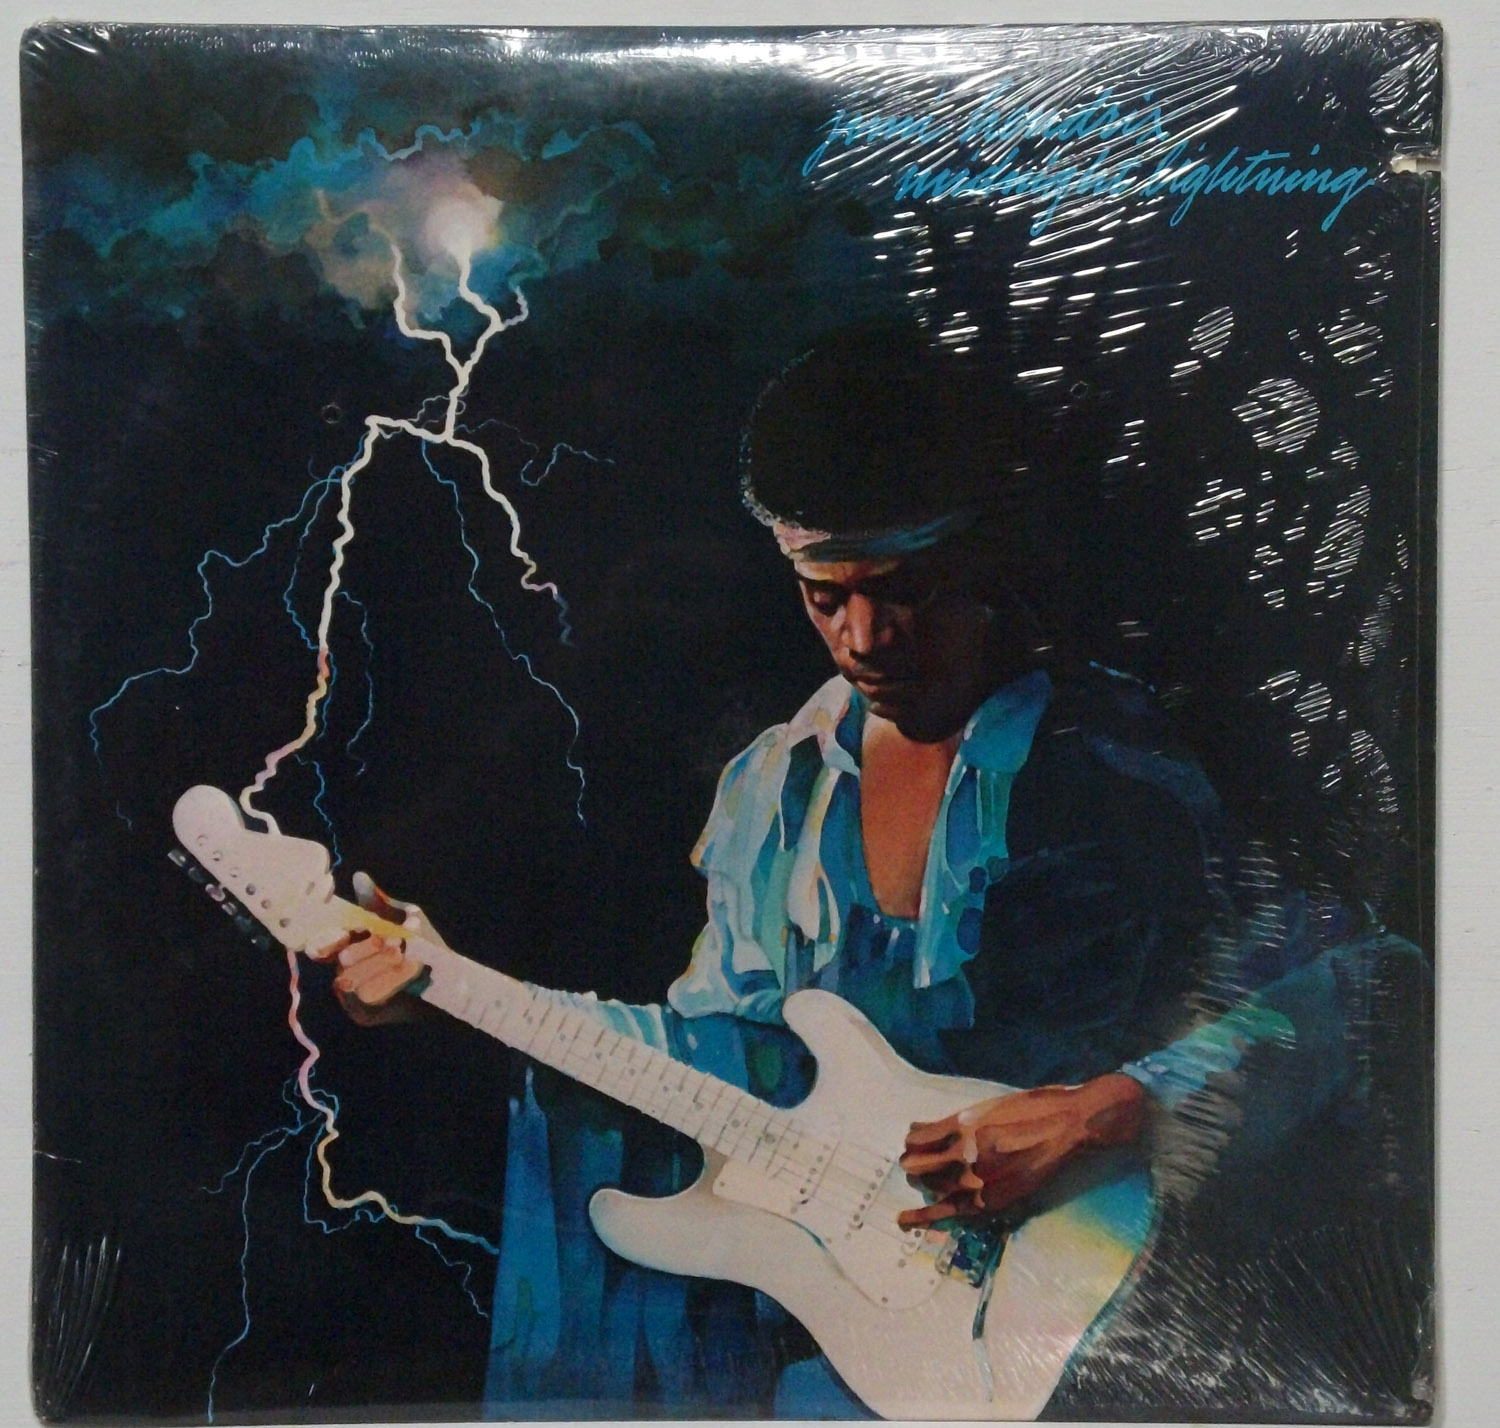 Jimi Hendrix - Midnight Lightning sealed 1975 LP